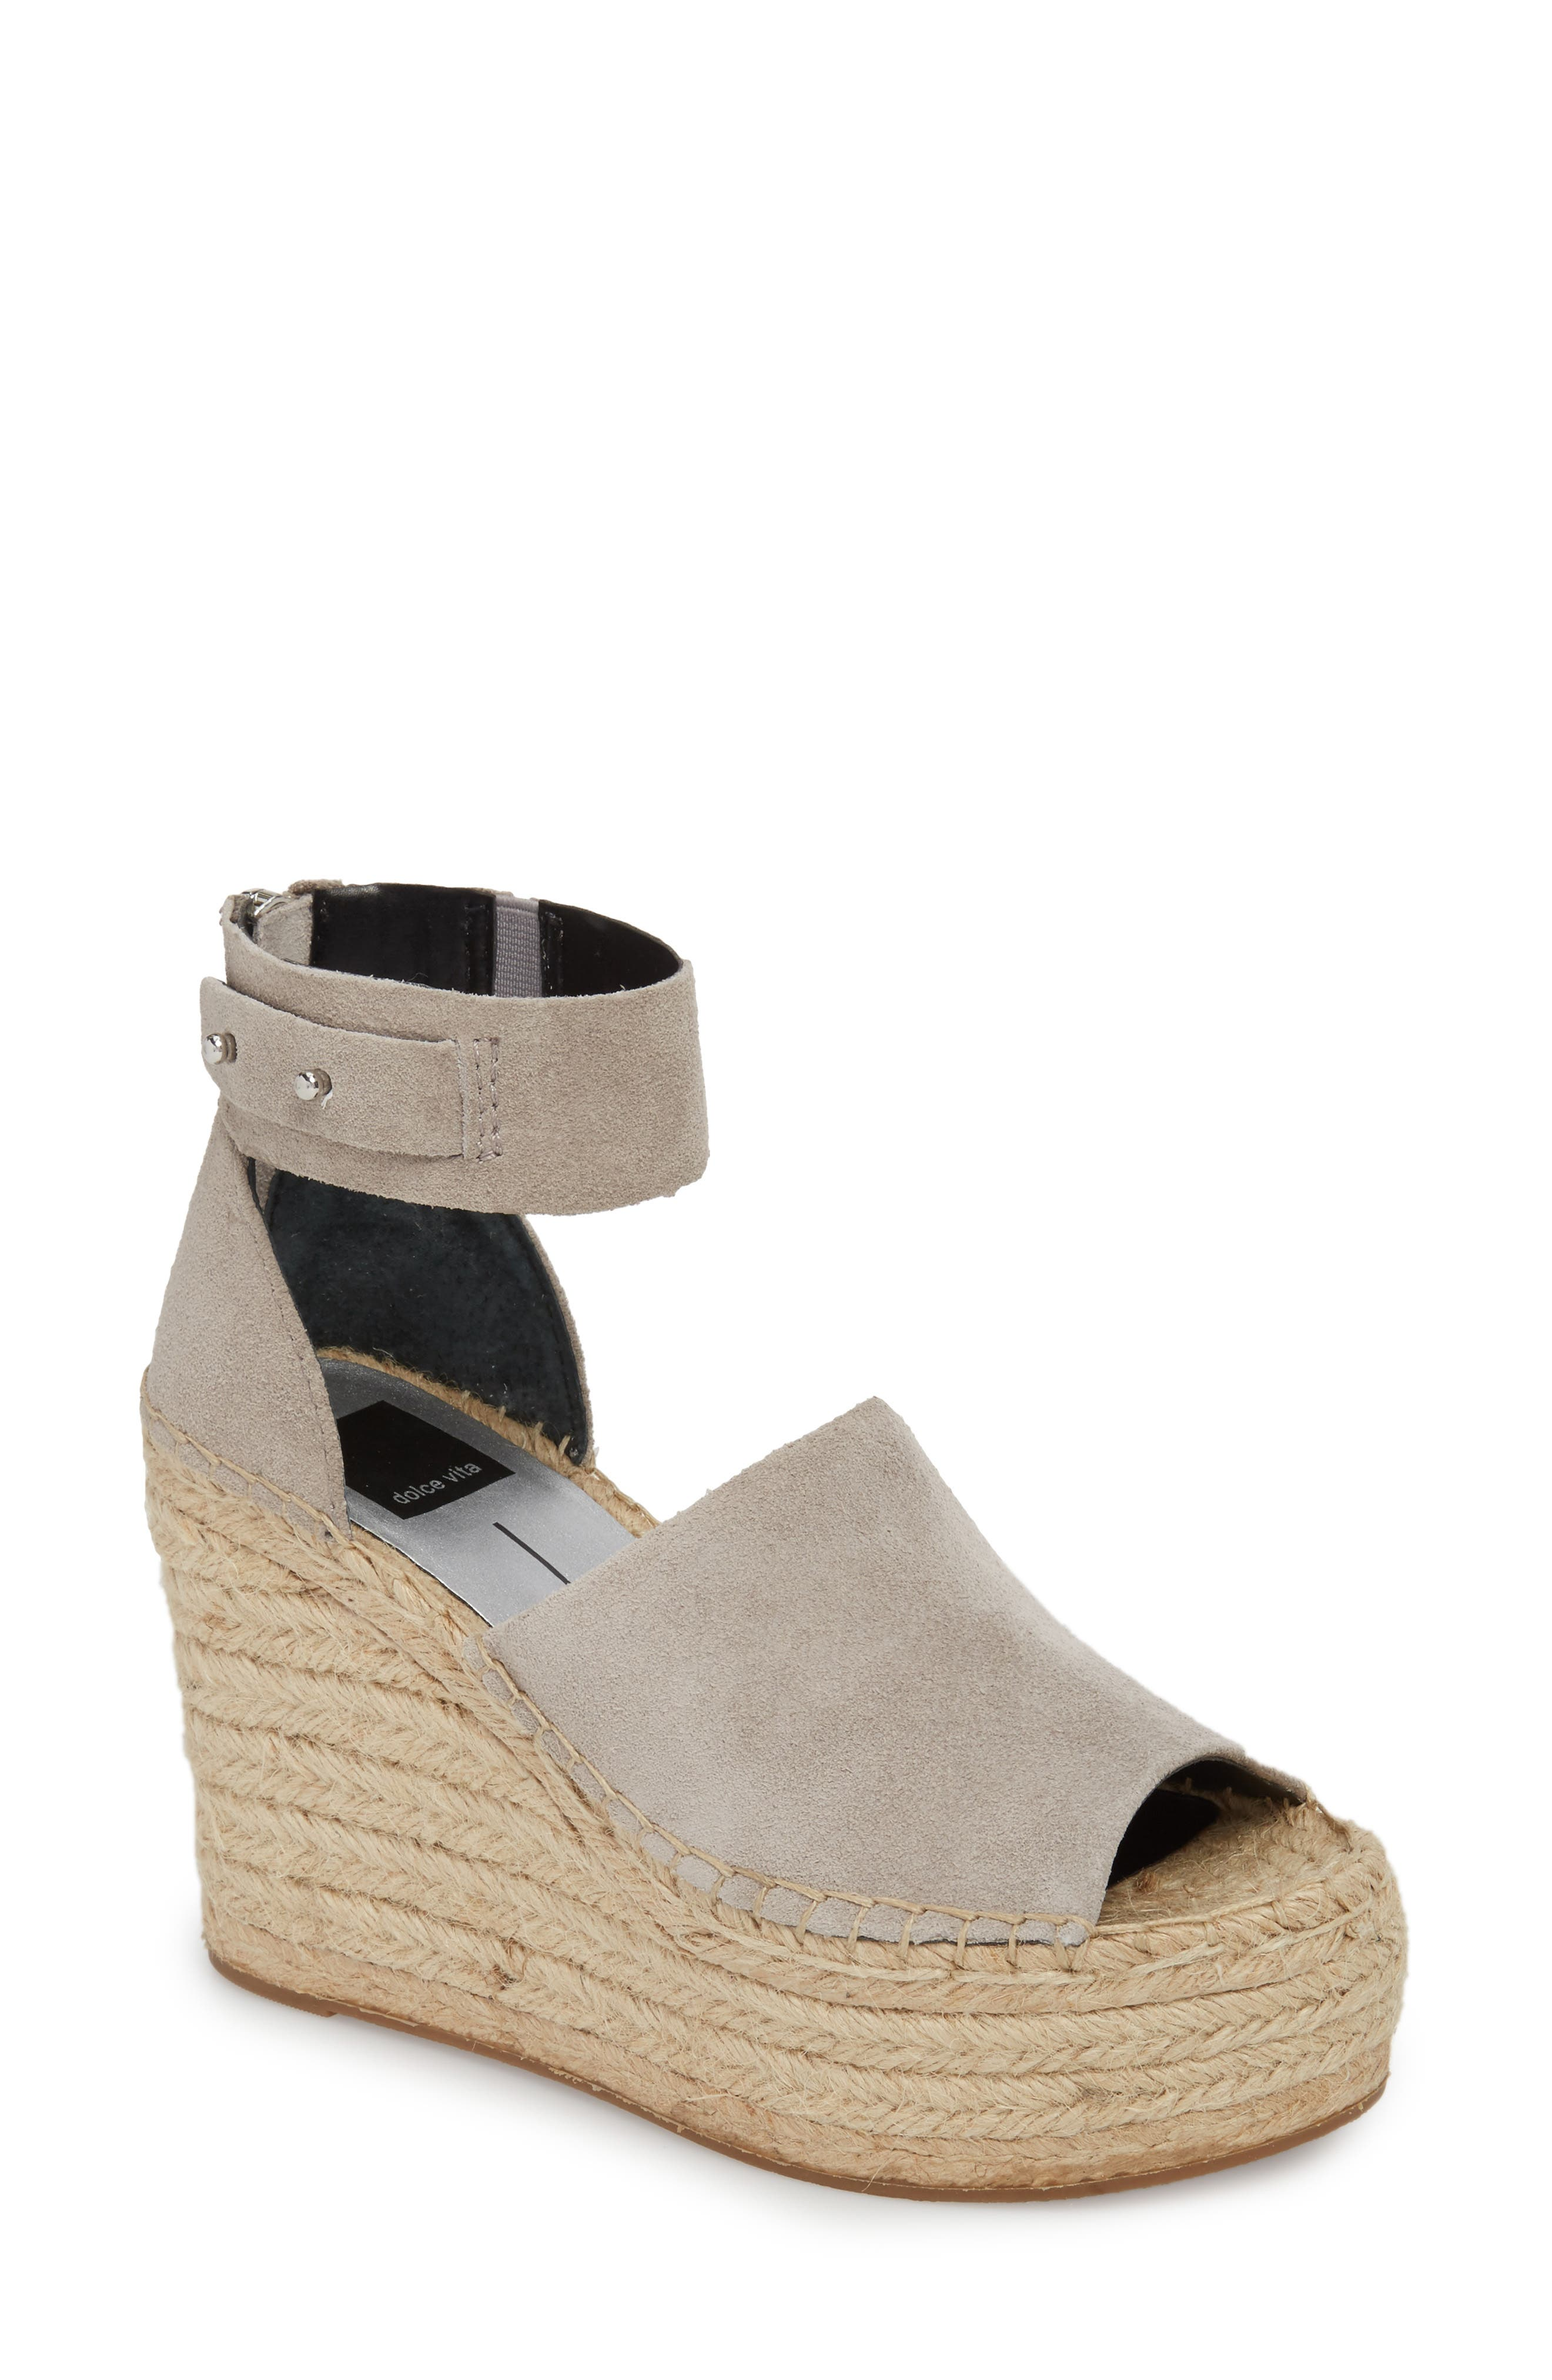 Straw Wedge Espadrille Sandal,                             Main thumbnail 1, color,                             033